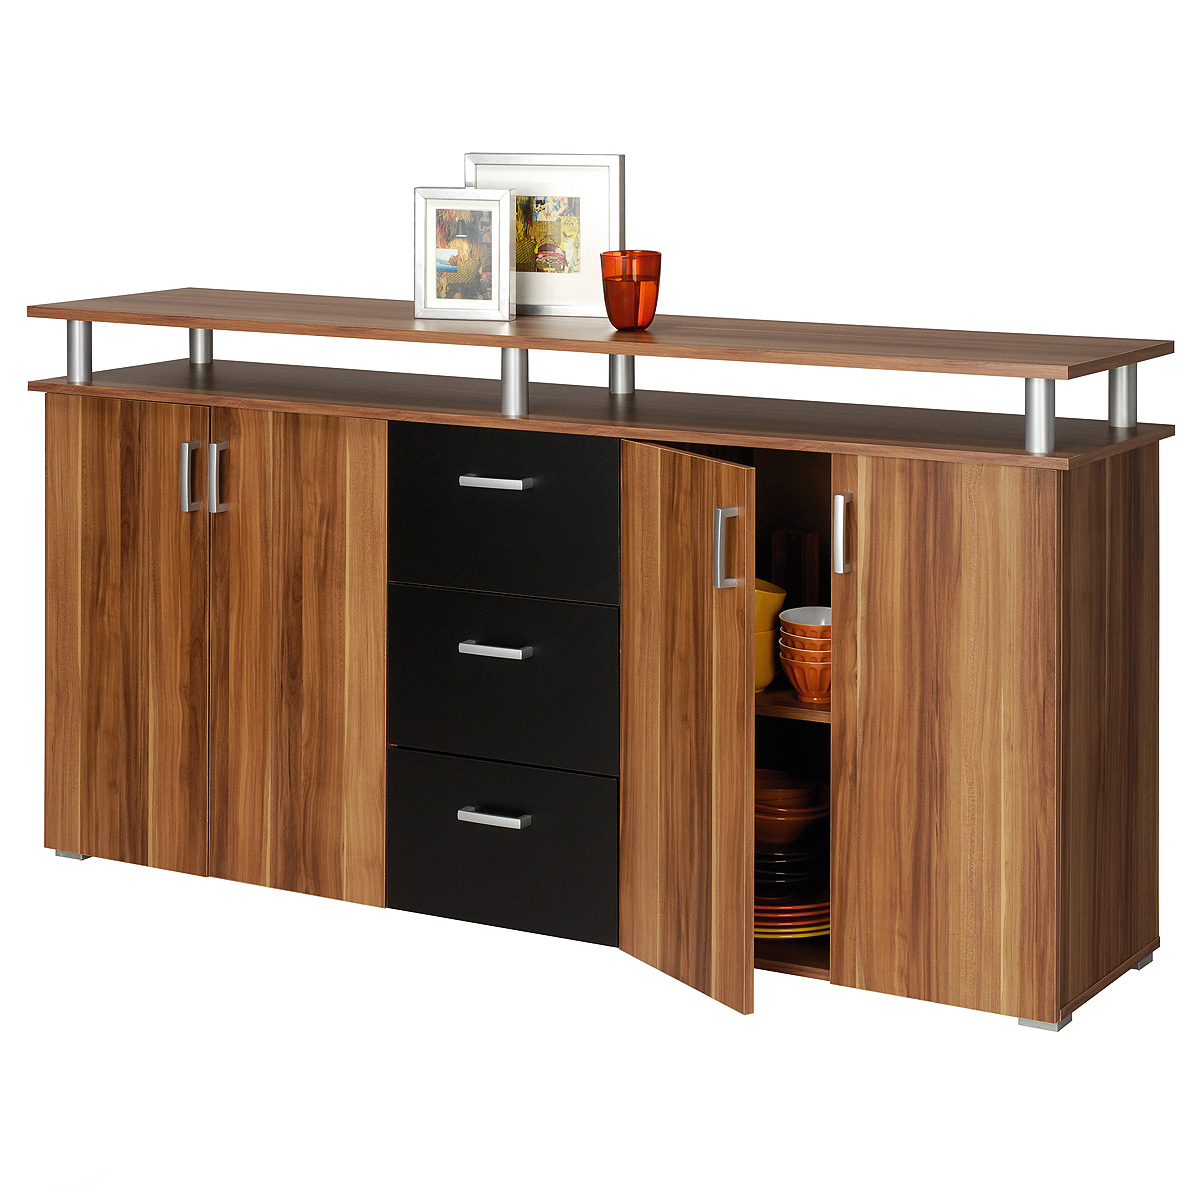 sideboard lios kommode anrichte in nussbaum schwarz neu ebay. Black Bedroom Furniture Sets. Home Design Ideas